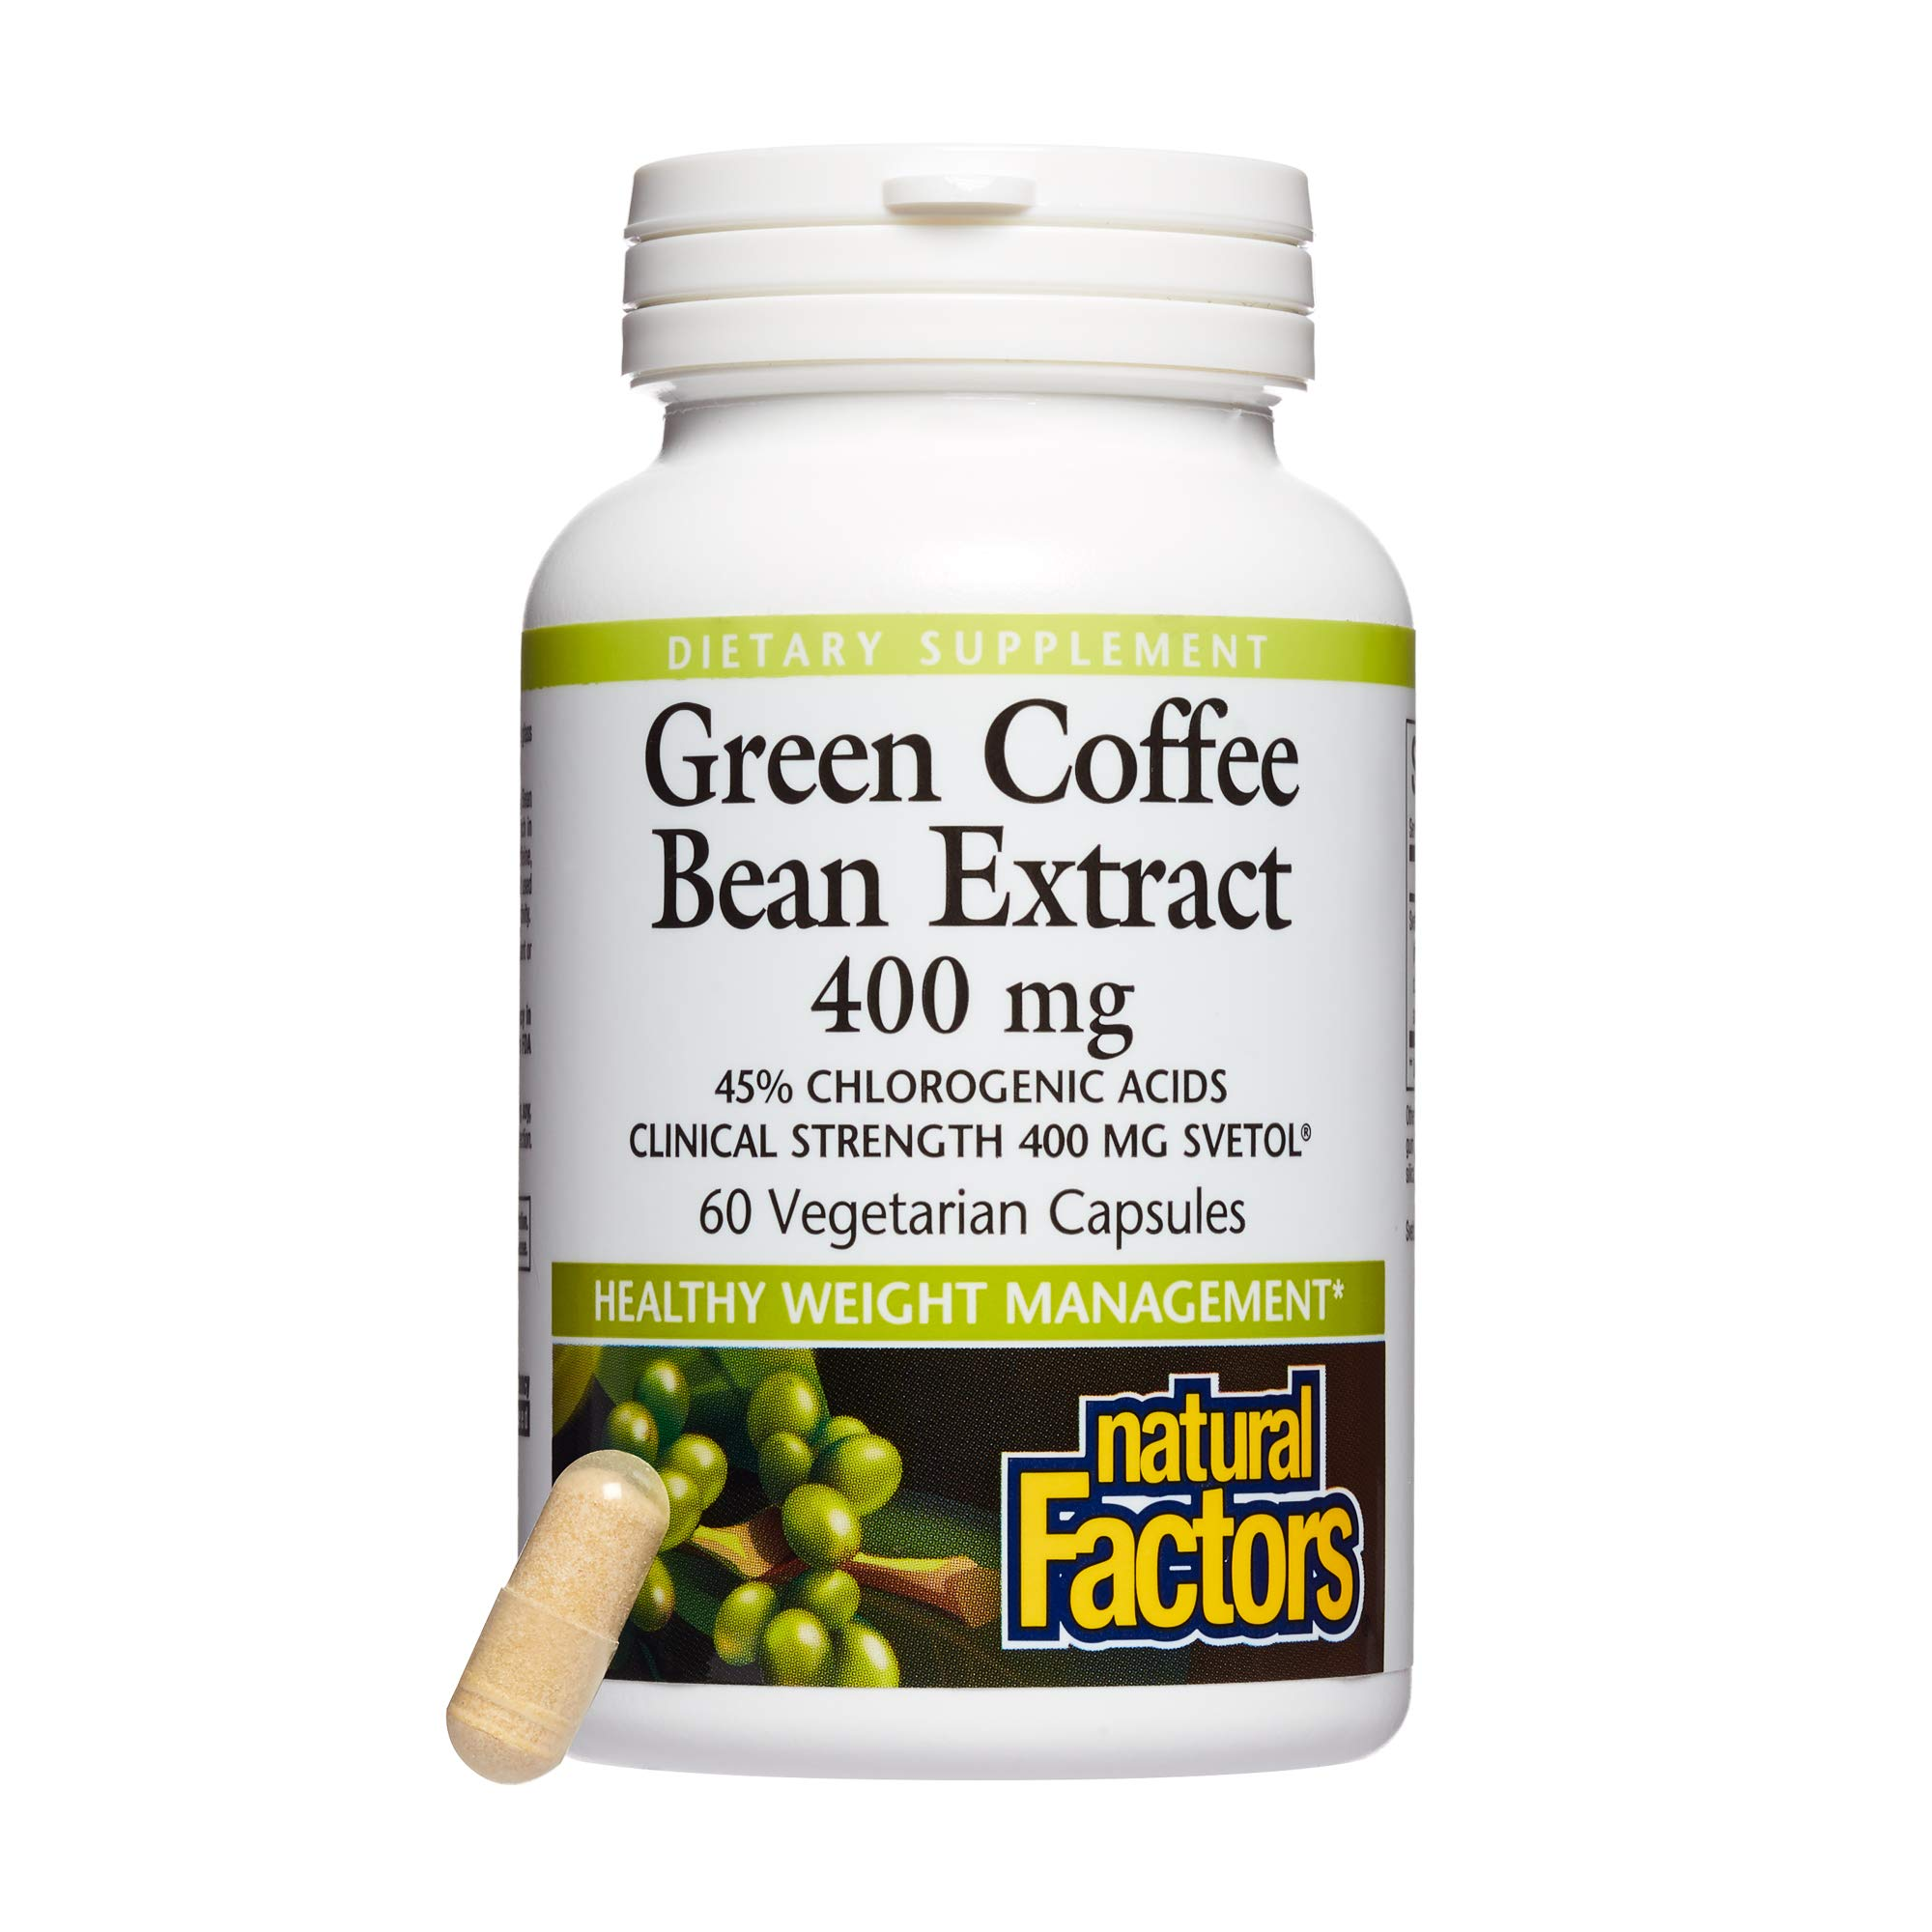 Natural Factors, Green Coffee Bean Extract 400 mg, Supports Healthy Weight Management, 60 capsules (60 servings) by Natural Factors